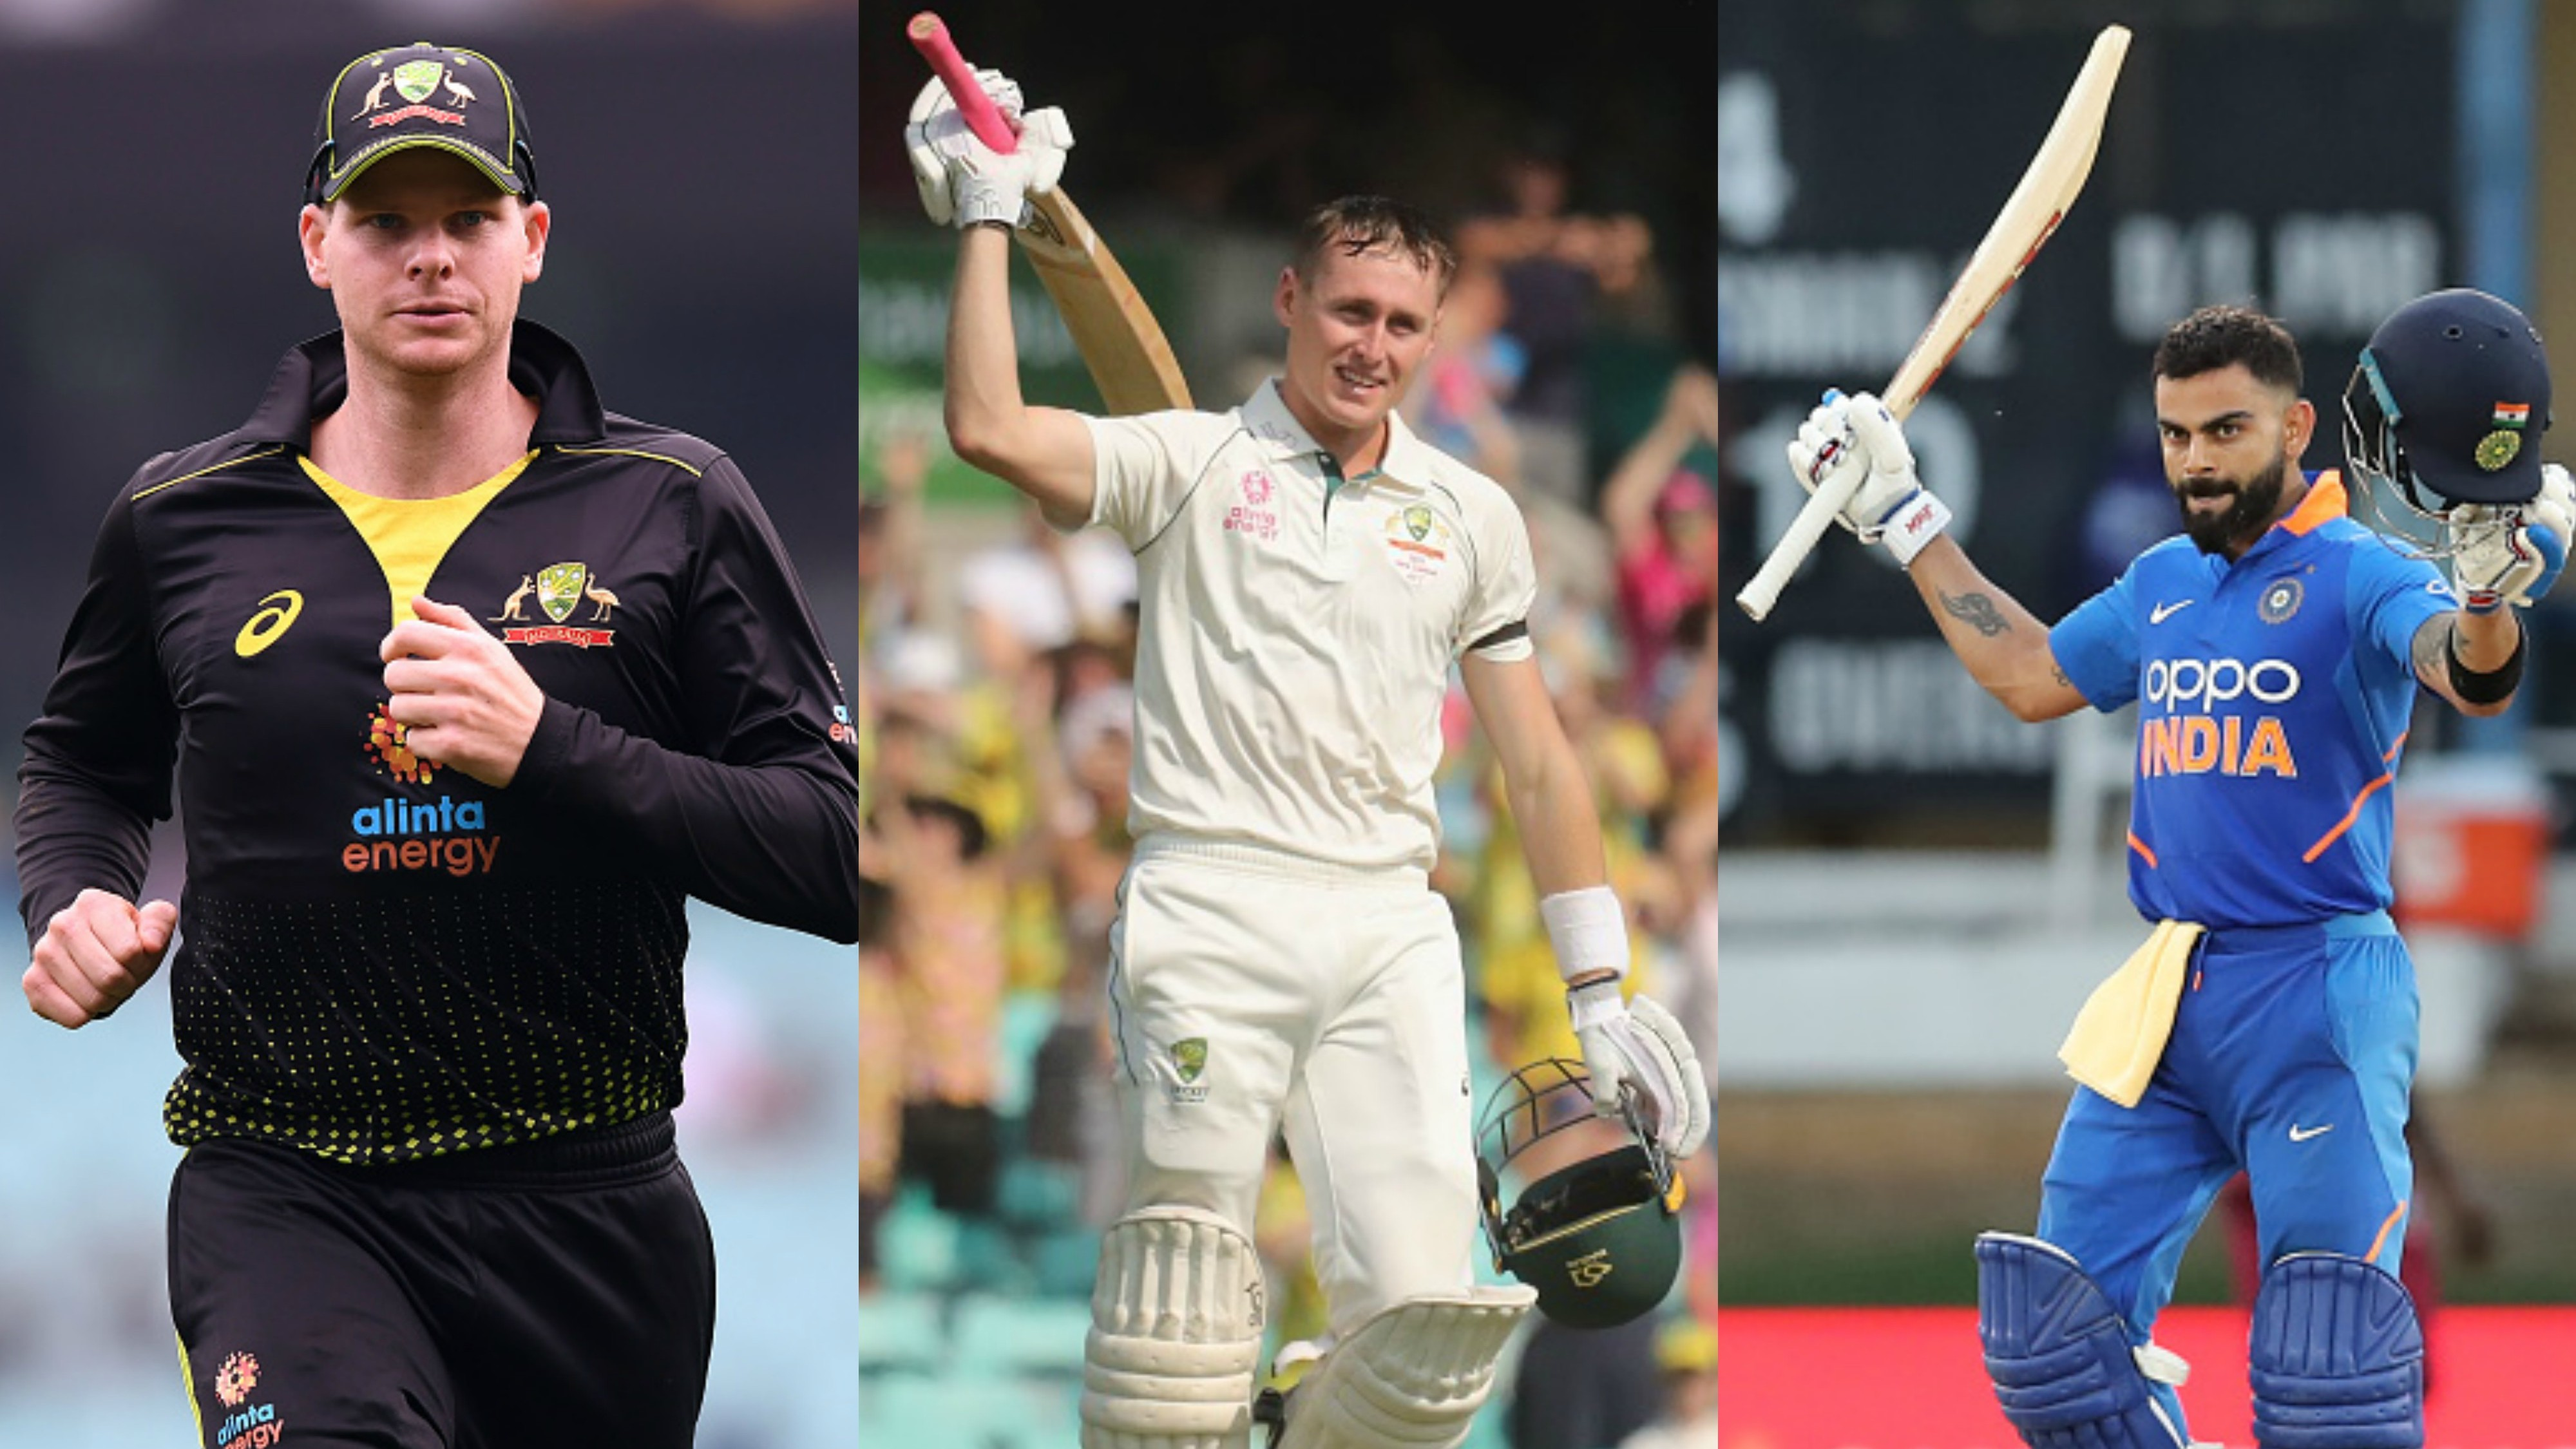 IND v AUS 2020: Labuschagne aspires to emulate multi-format masters like Virat Kohli and Steve Smith